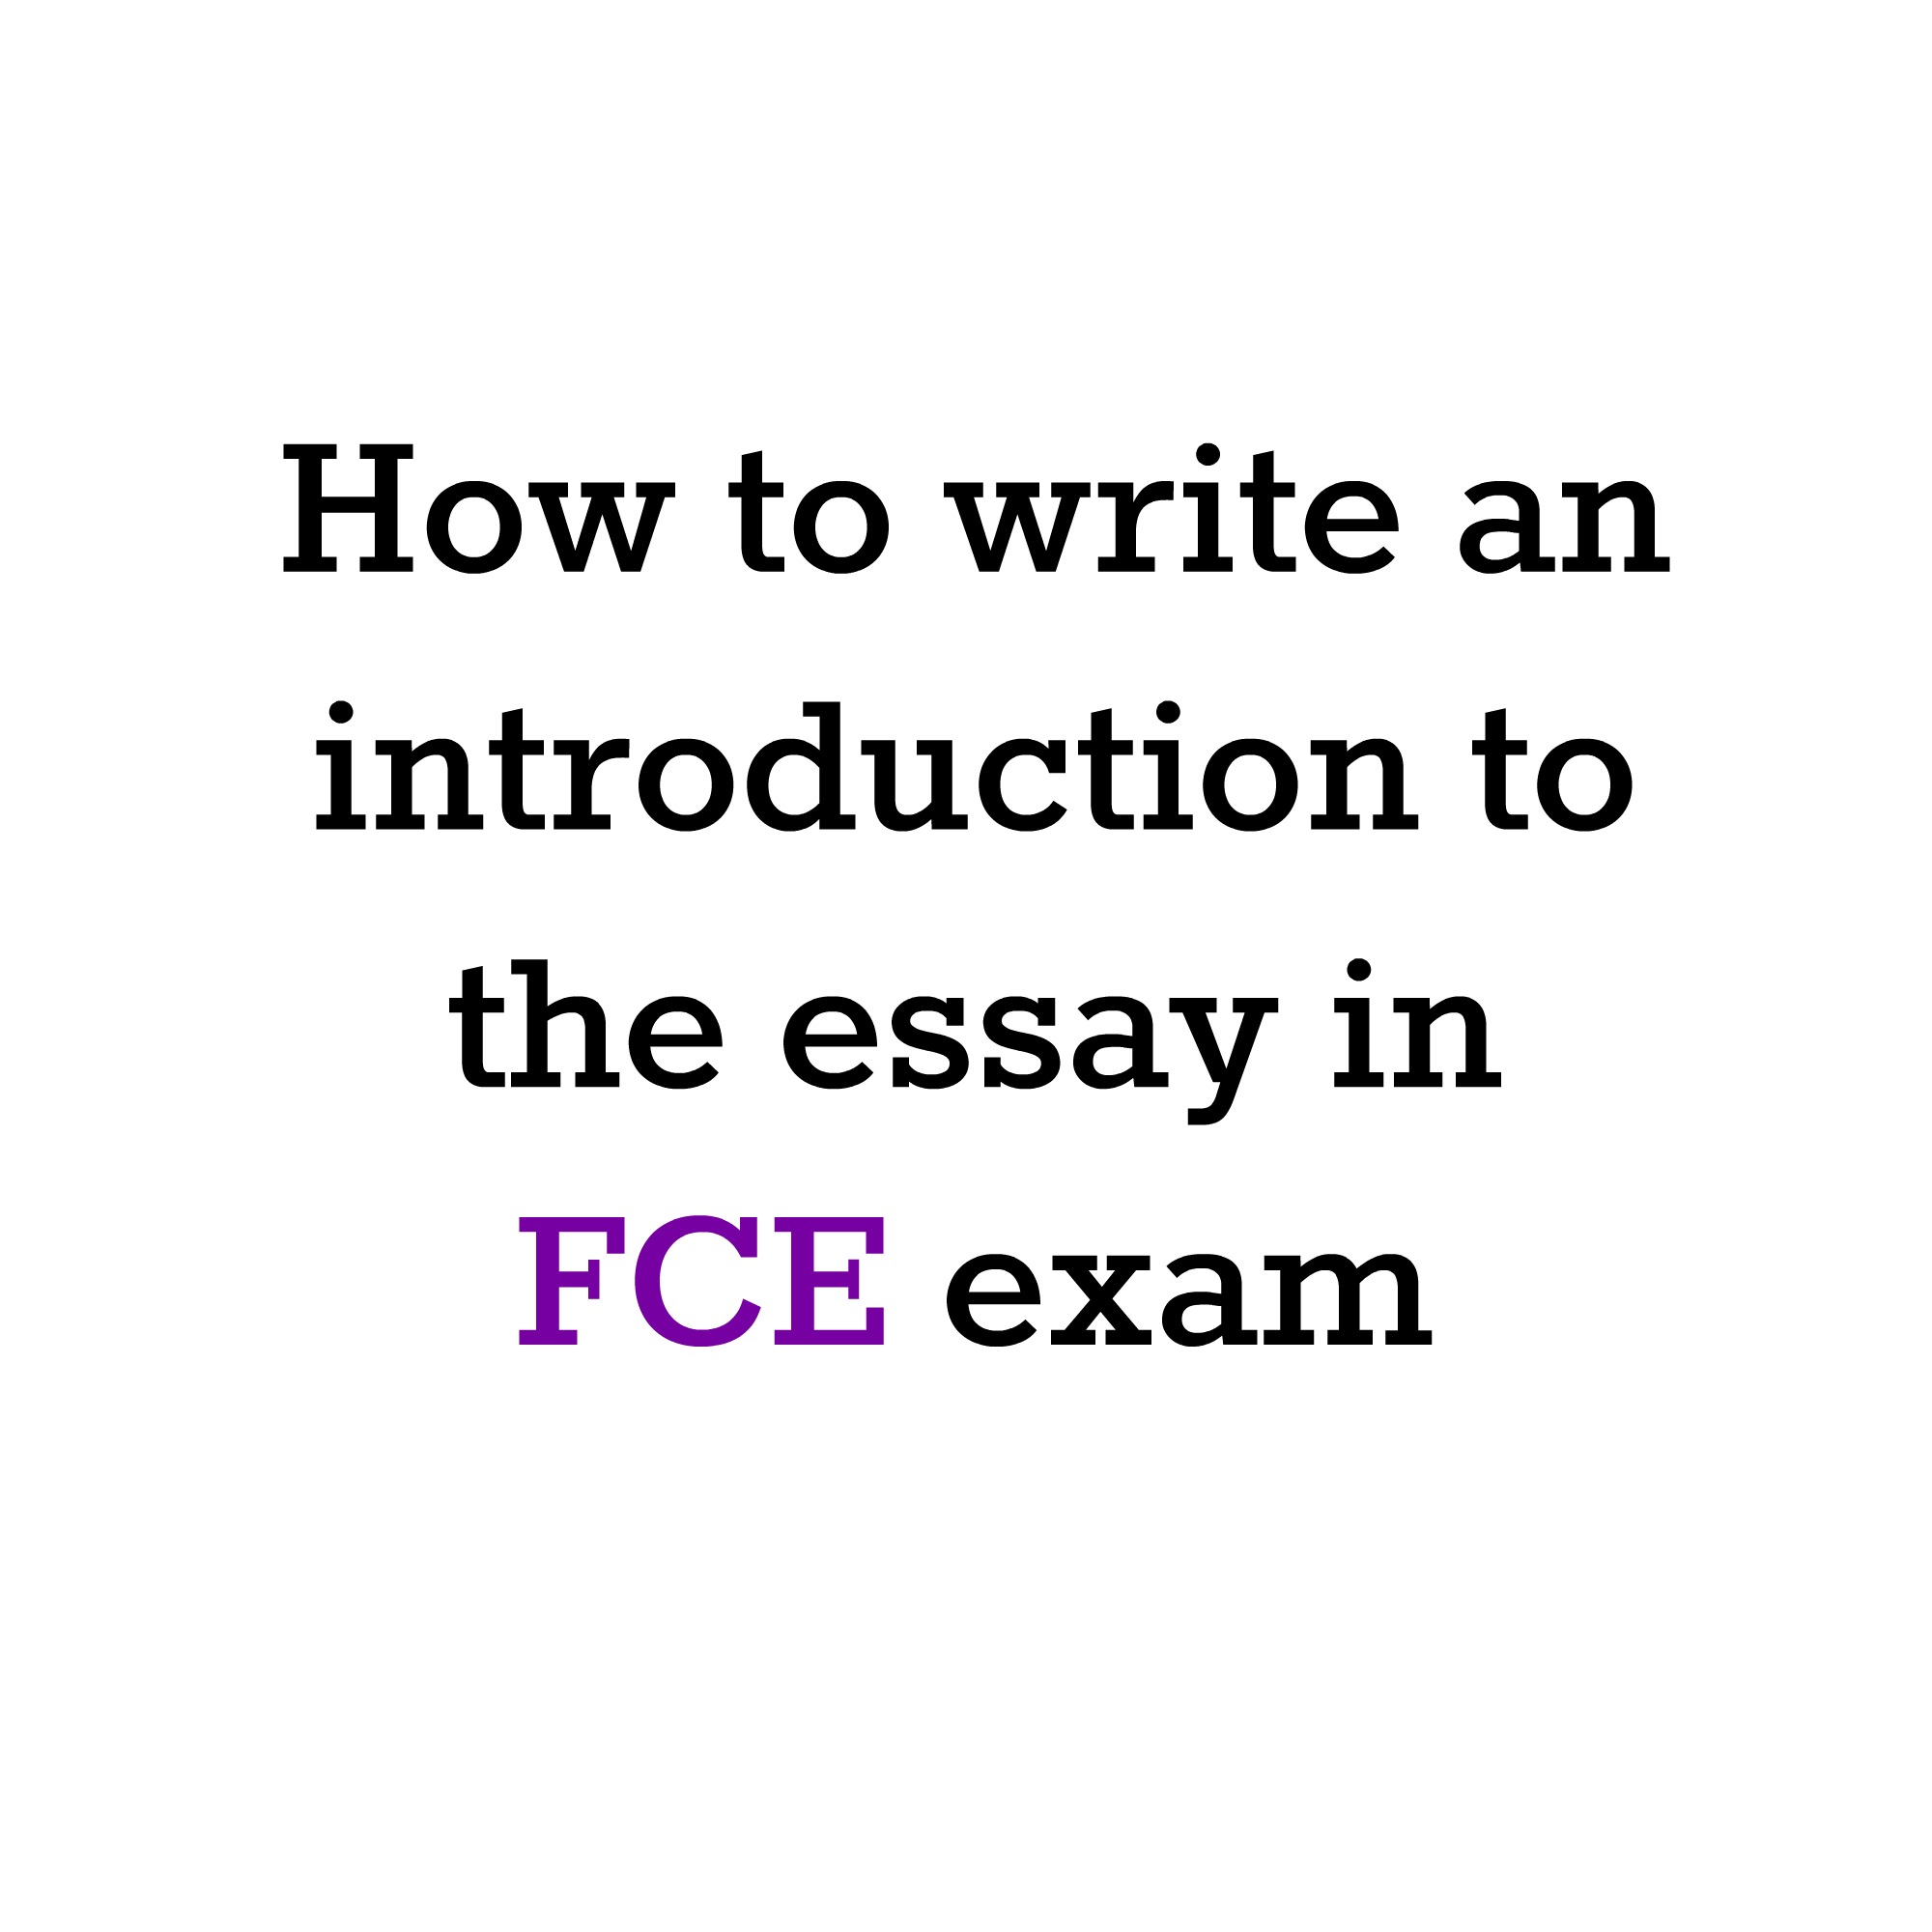 writing an essay for fce Fce examination |paper 2: writing 17 these indications of readership and purpose are not comprehensive, but are intended to provide some guidelines.